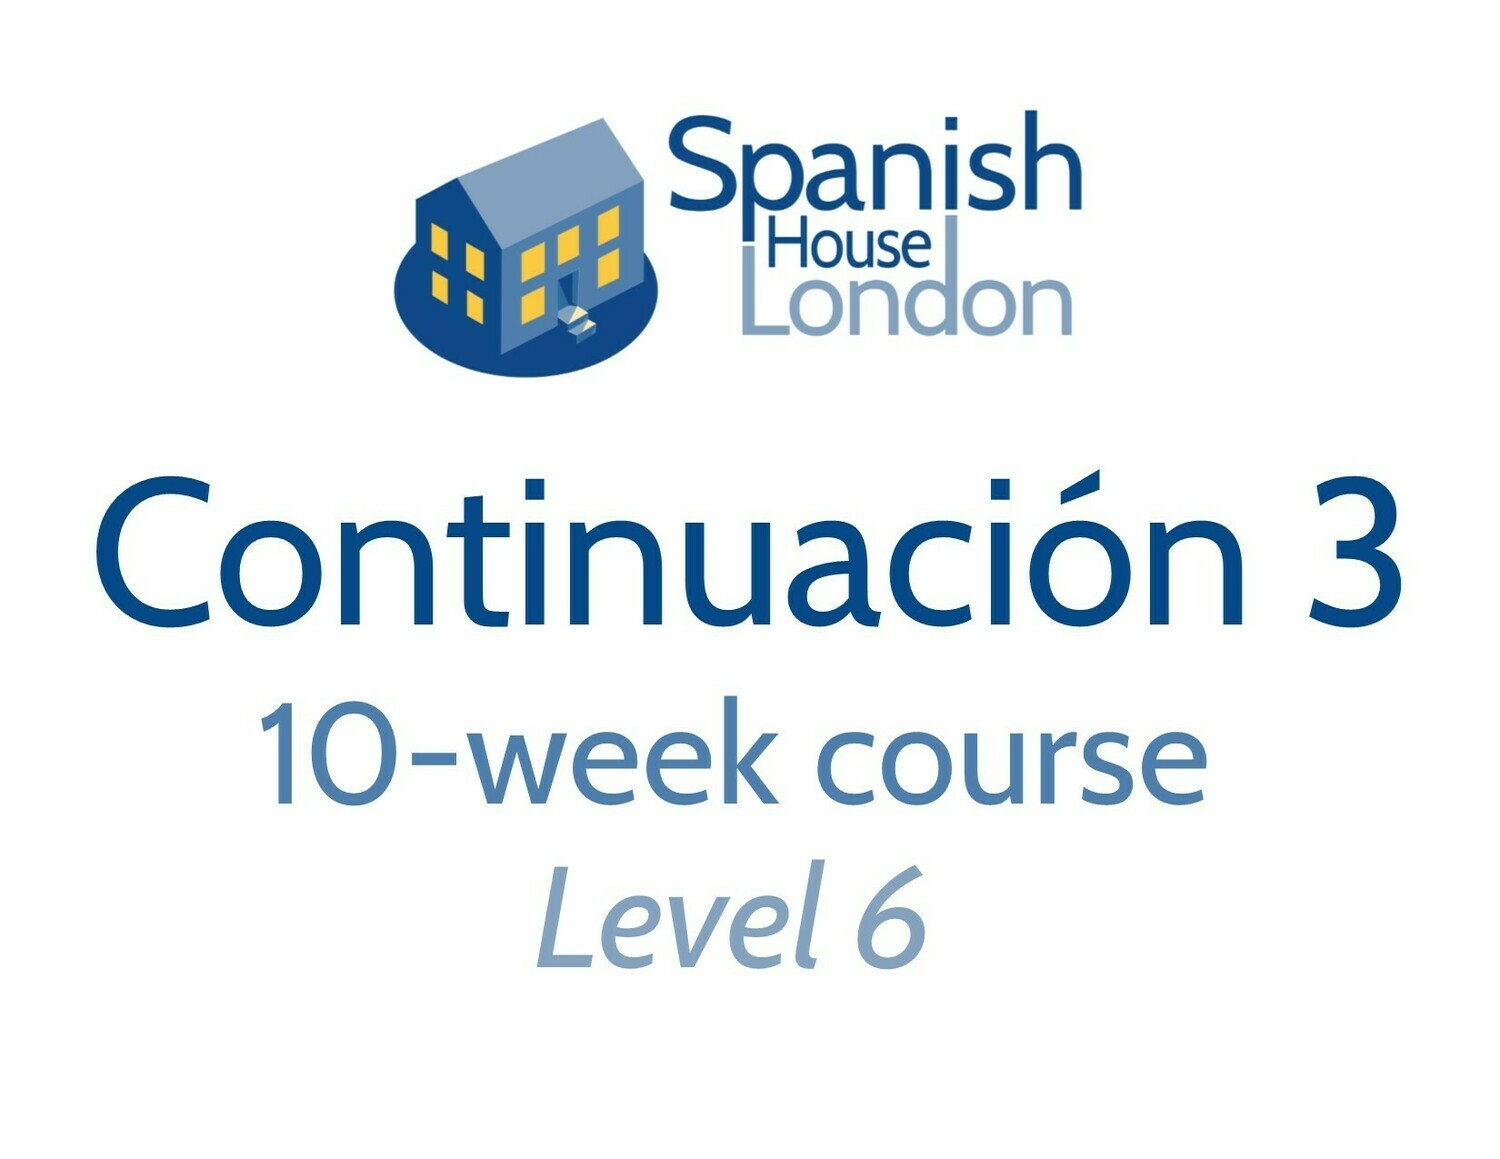 Continuacion 3 Course starting on 1st September at 6pm